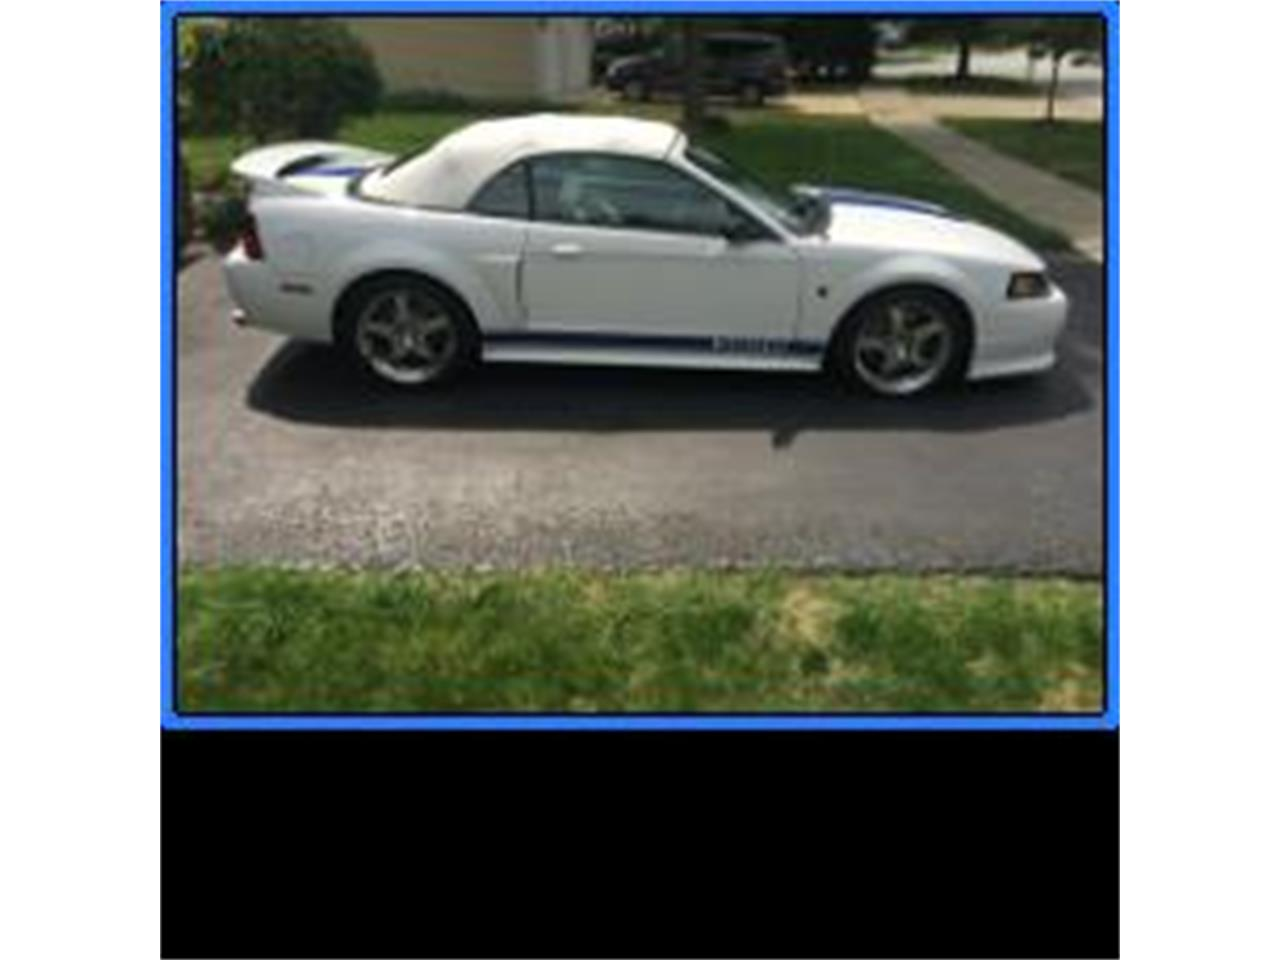 2003 Ford Mustang (Roush) (CC-1136788) for sale in Vernon Hills, Illinois